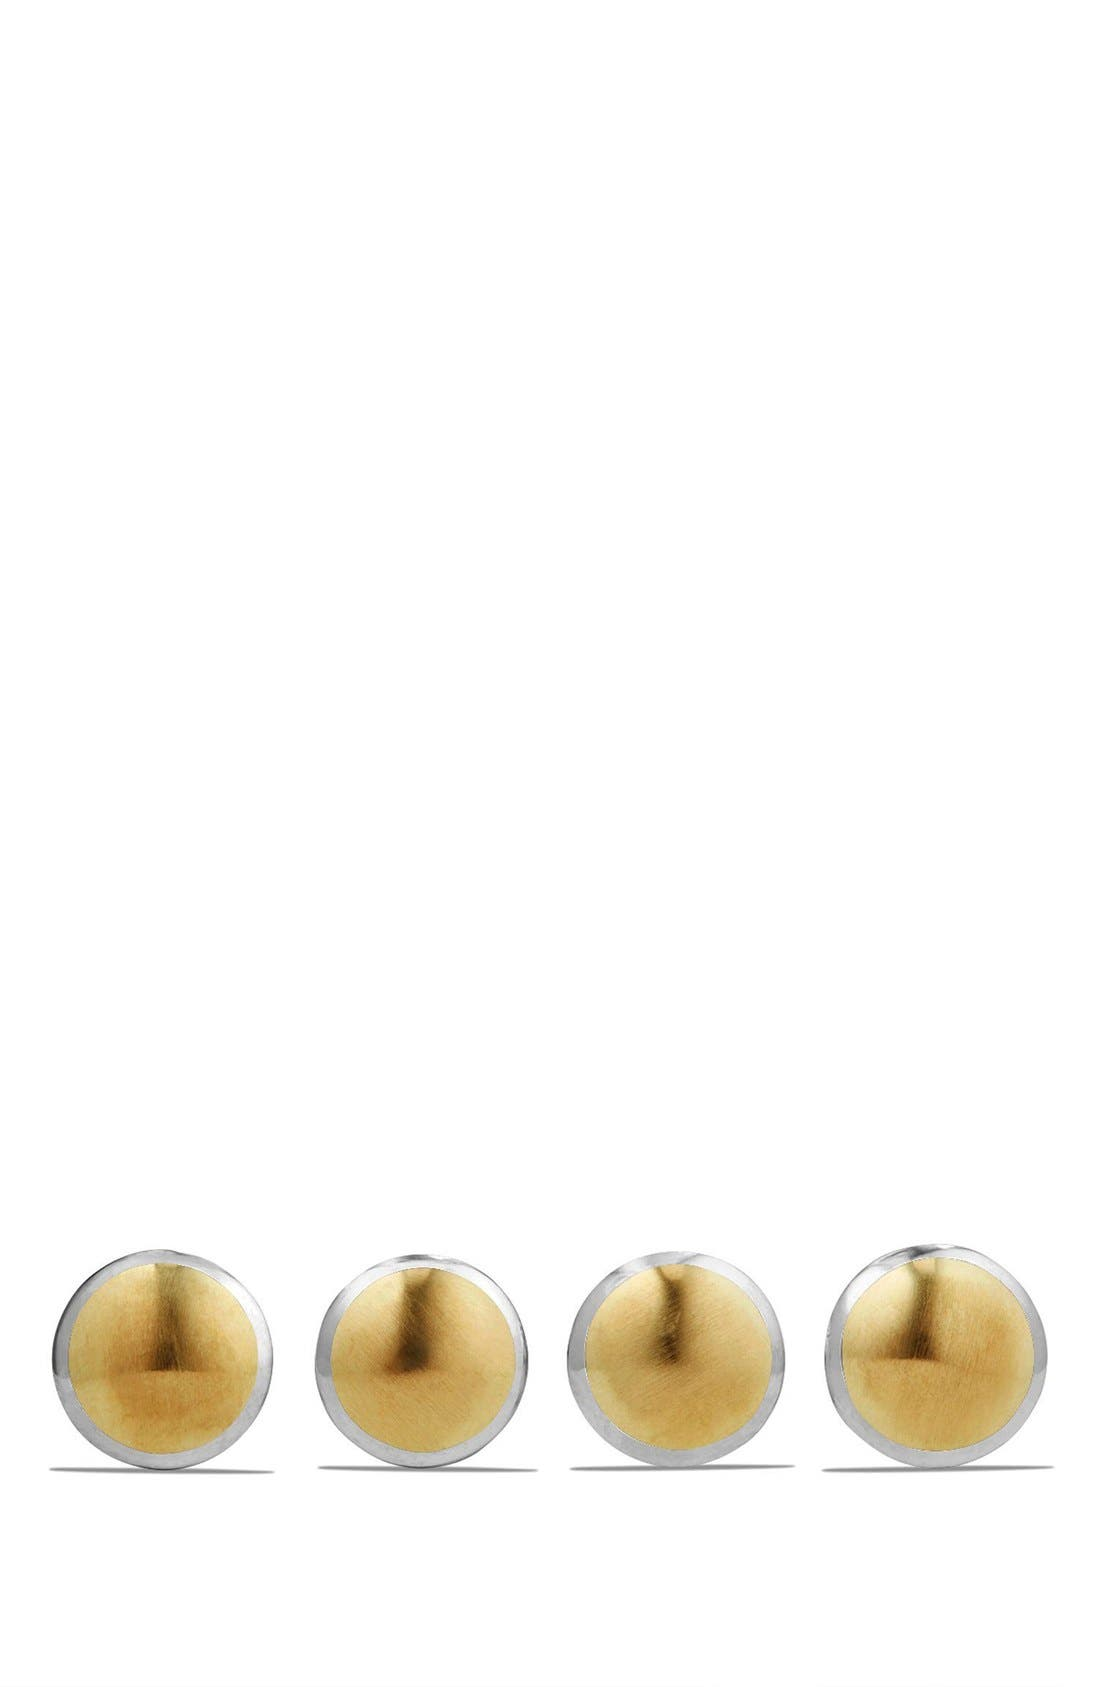 DAVID YURMAN Streamline Set of 4 Shirt Studs with 18K Gold